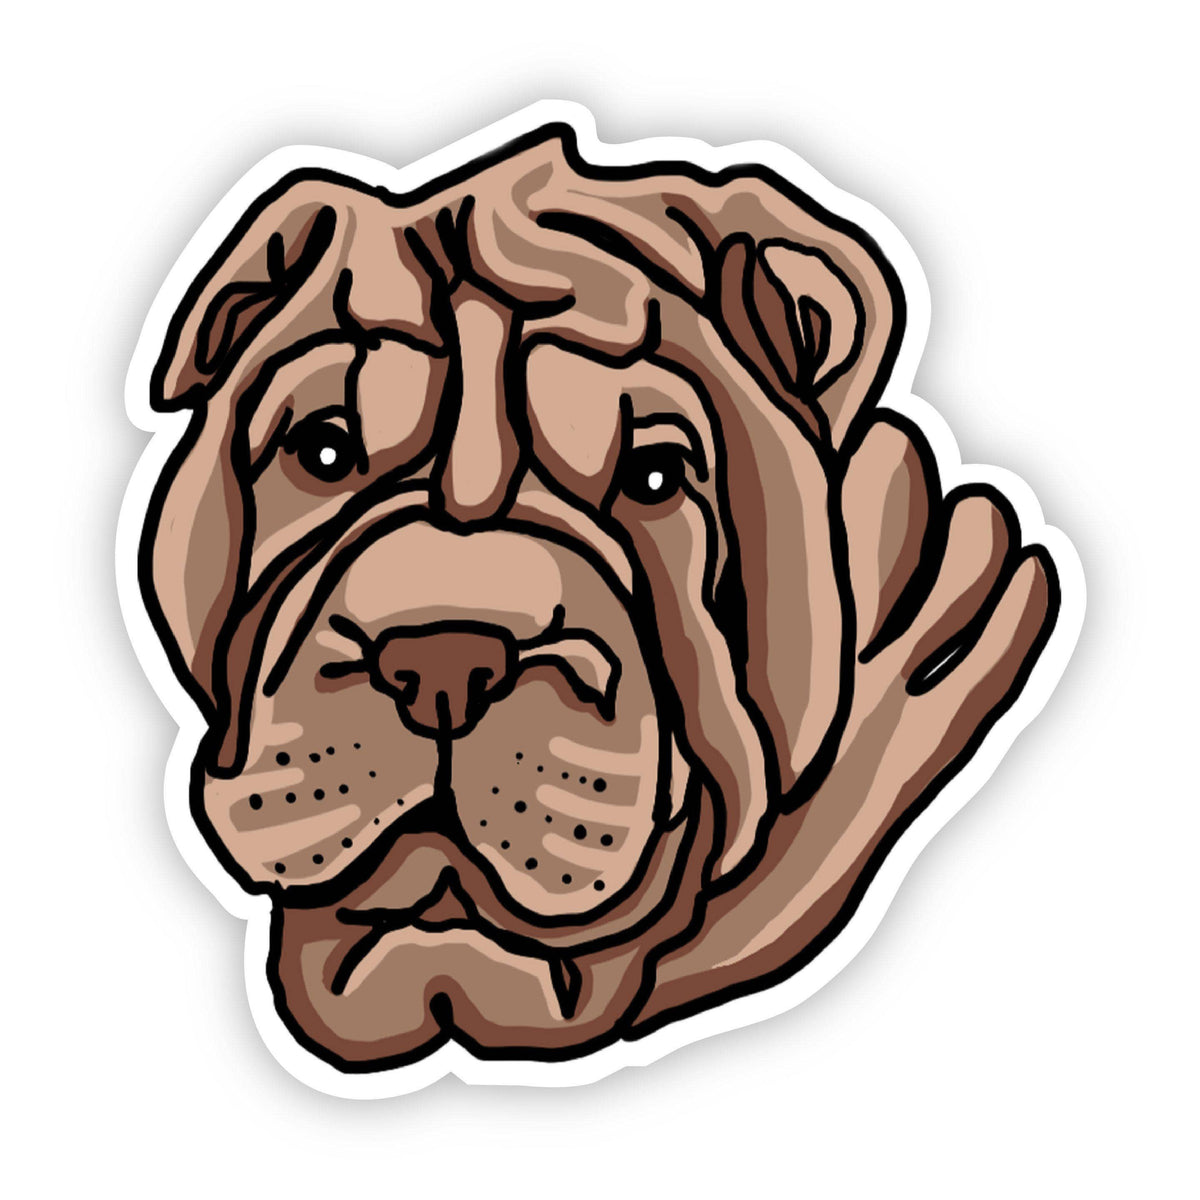 Shar-Pei Dog Sticker